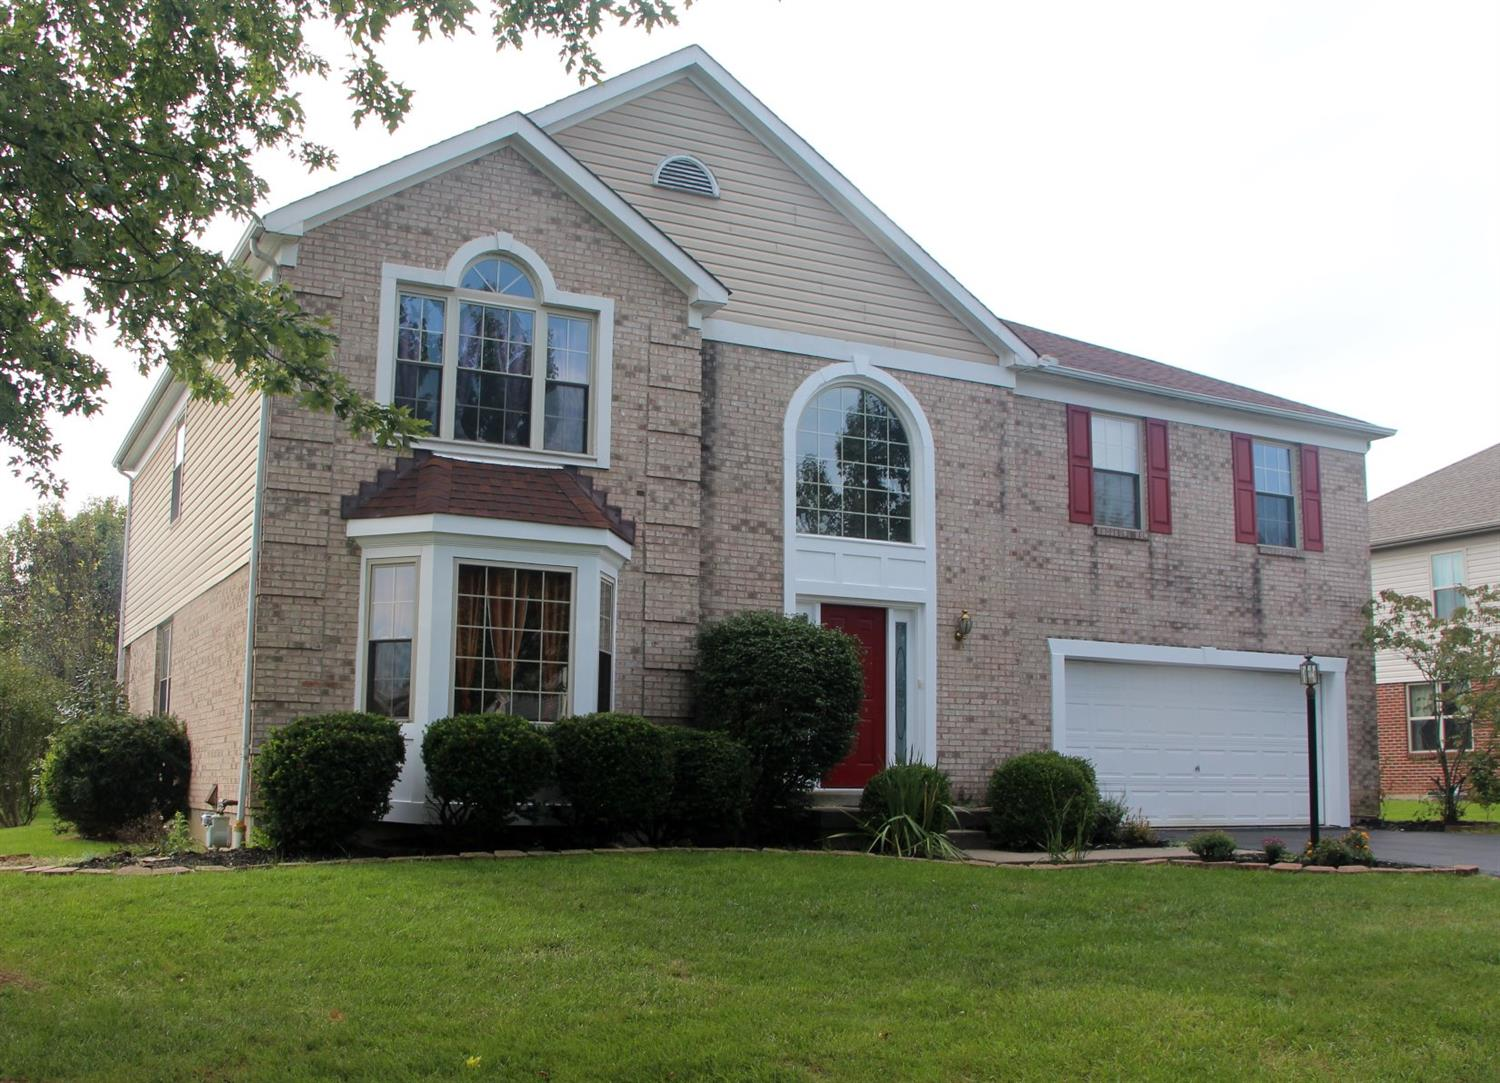 6537 Glenarbor Dr West Chester - West, OH